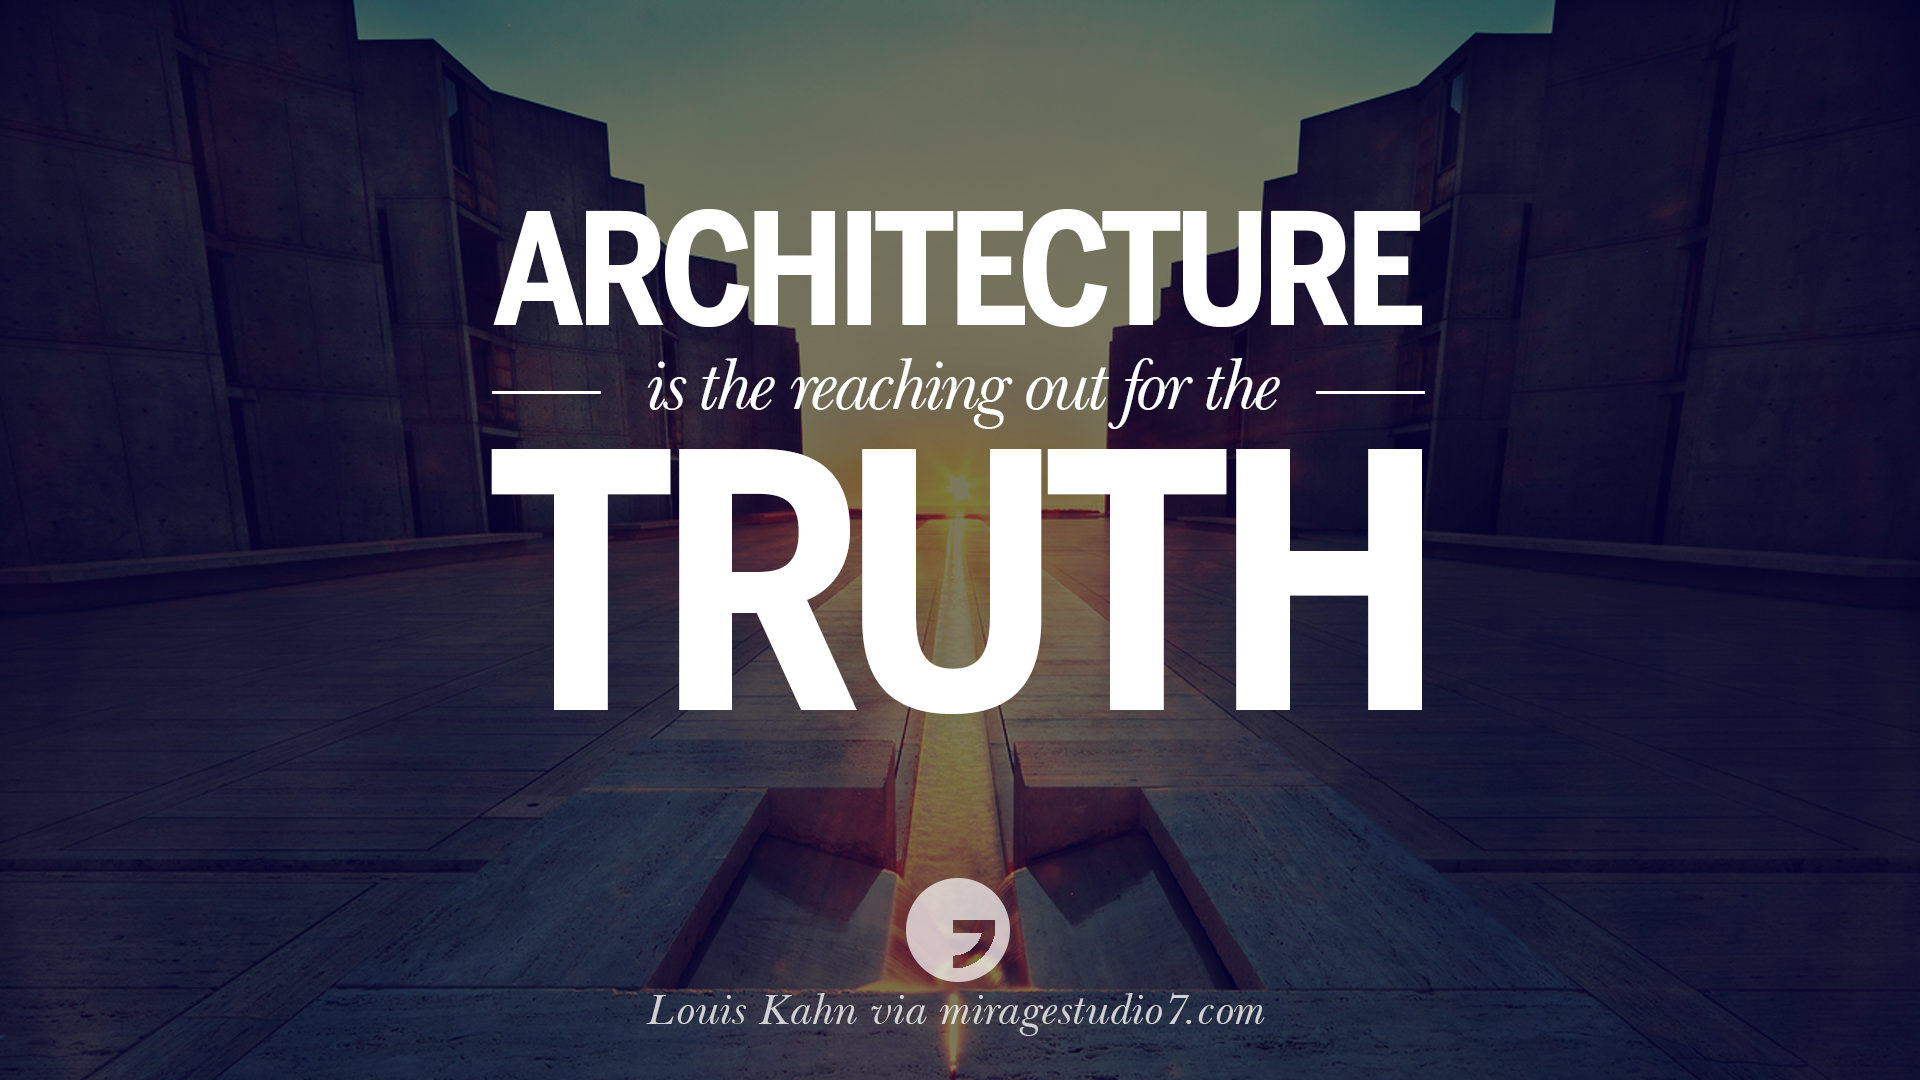 List Of Inspirational Quotes About Life 28 Inspirational Architecture Quotesfamous Architects And